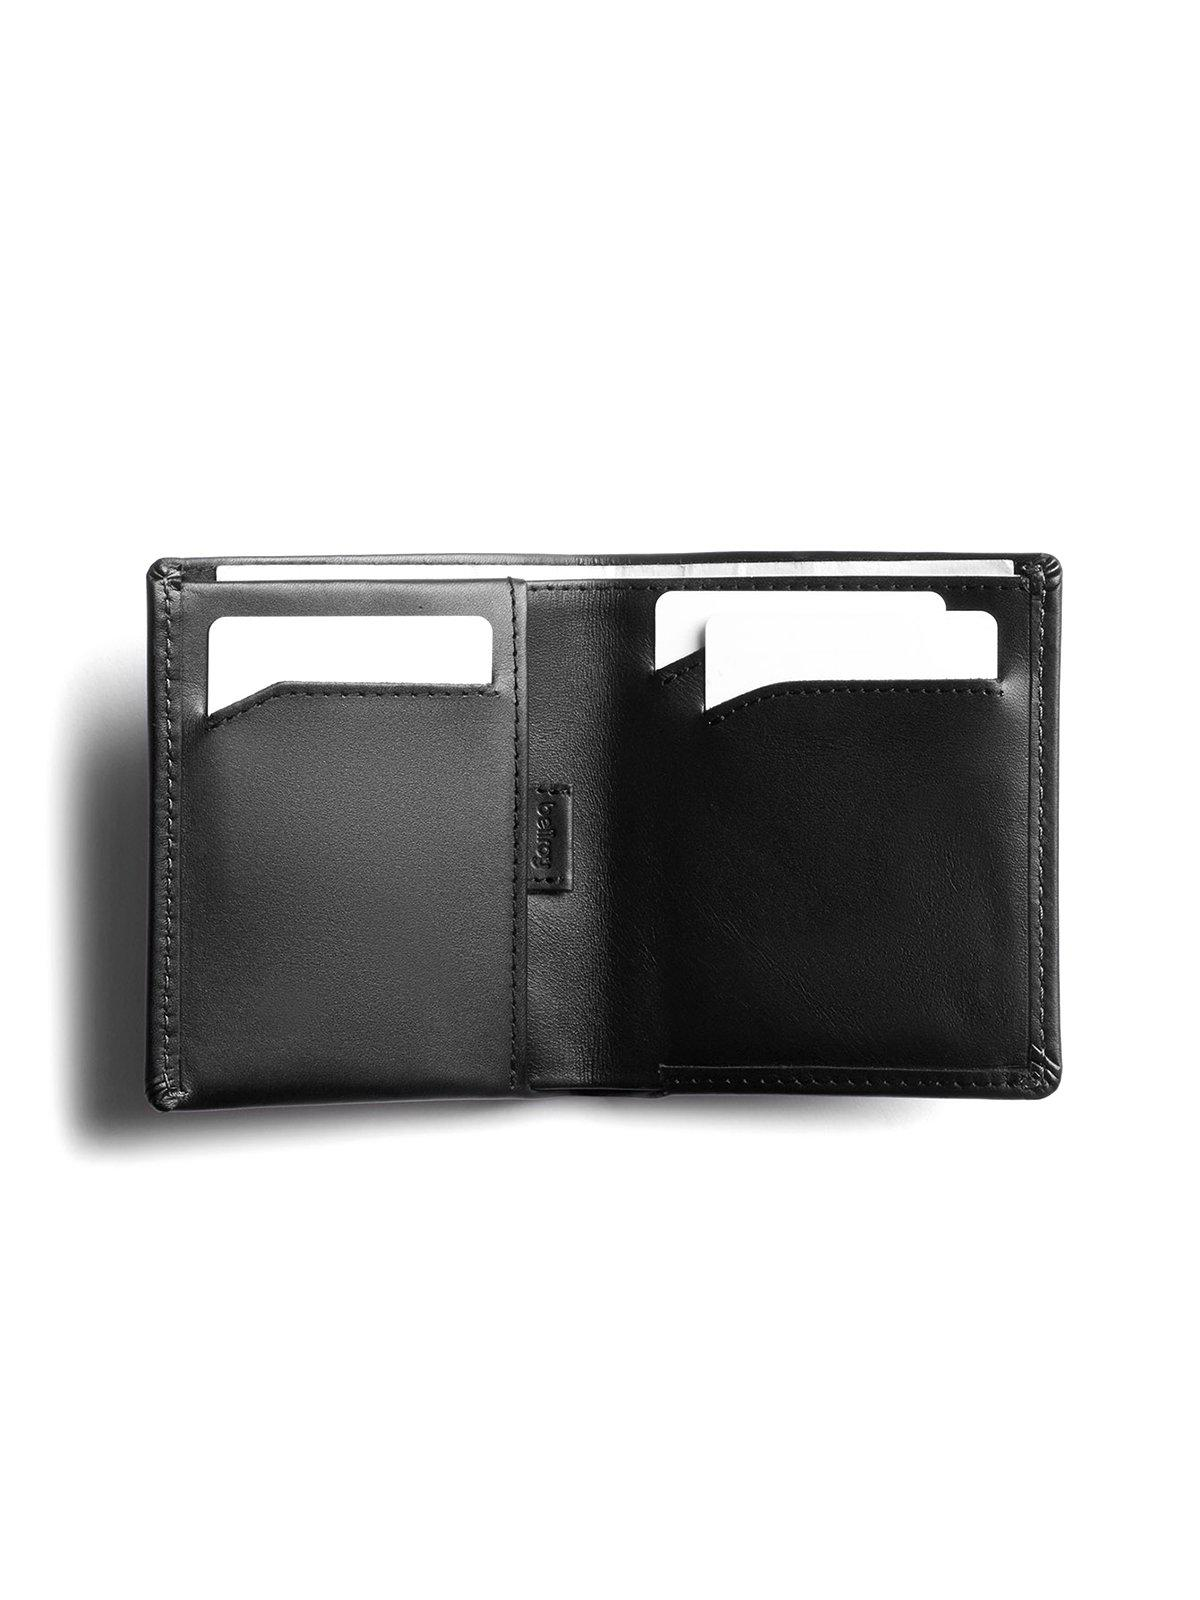 Bellroy Note Sleeve Wallet Black RFID - MORE by Morello Indonesia